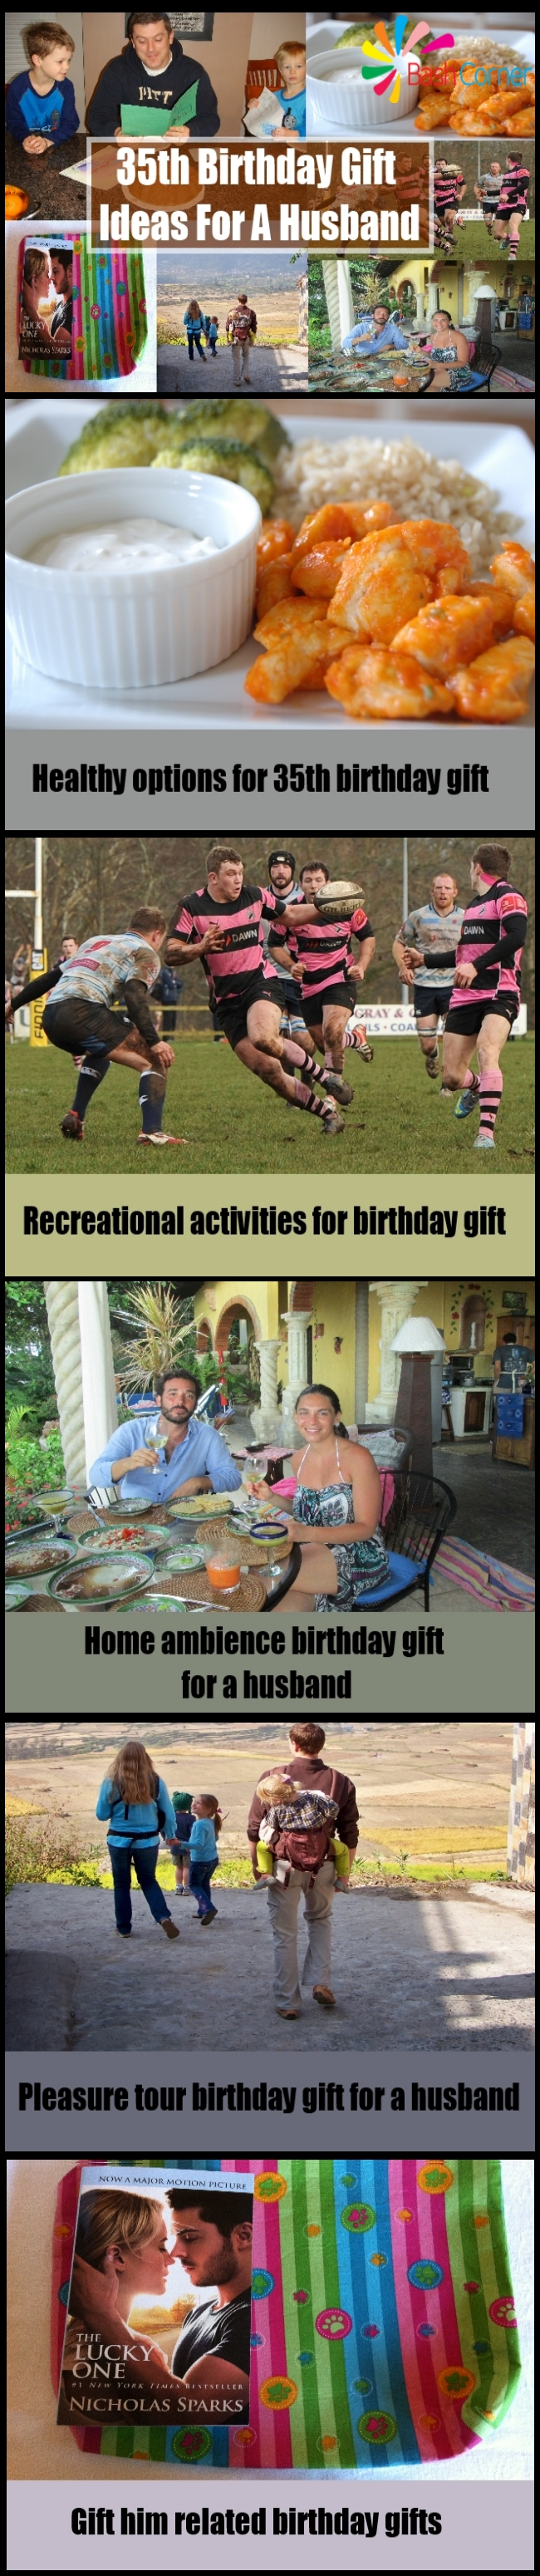 35th birthday gift ideas for a husband | gift ideas | pinterest